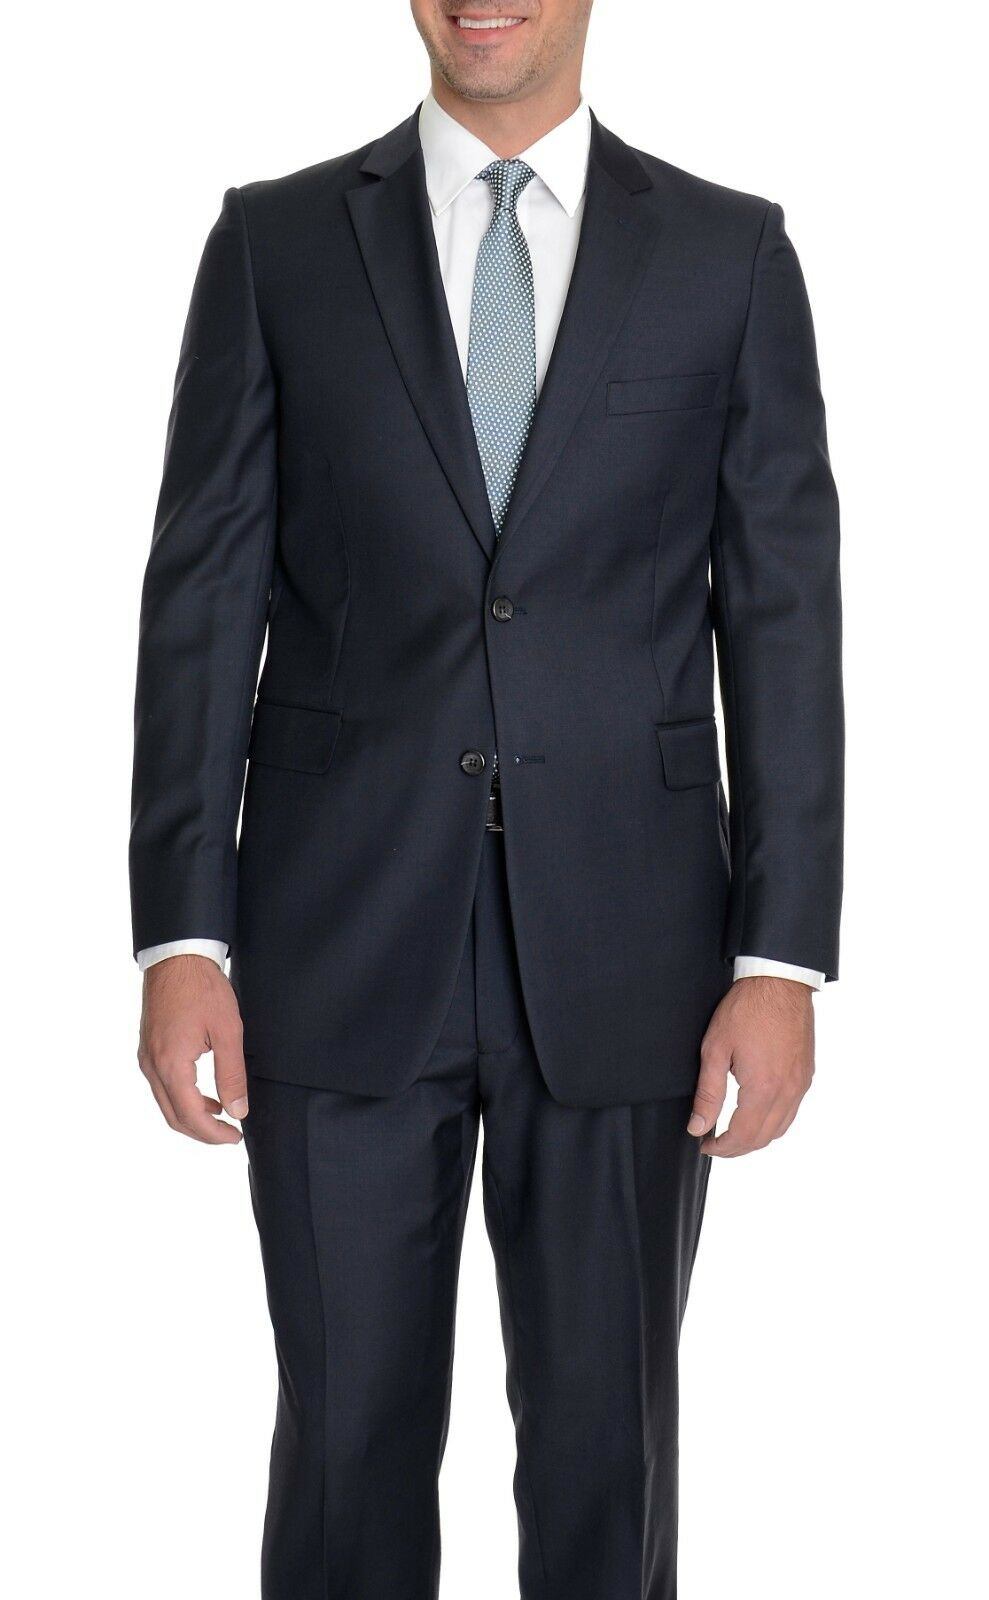 Reblack Classic Fit Solid bluee Two Button Suit 100% Wool 38R 30W